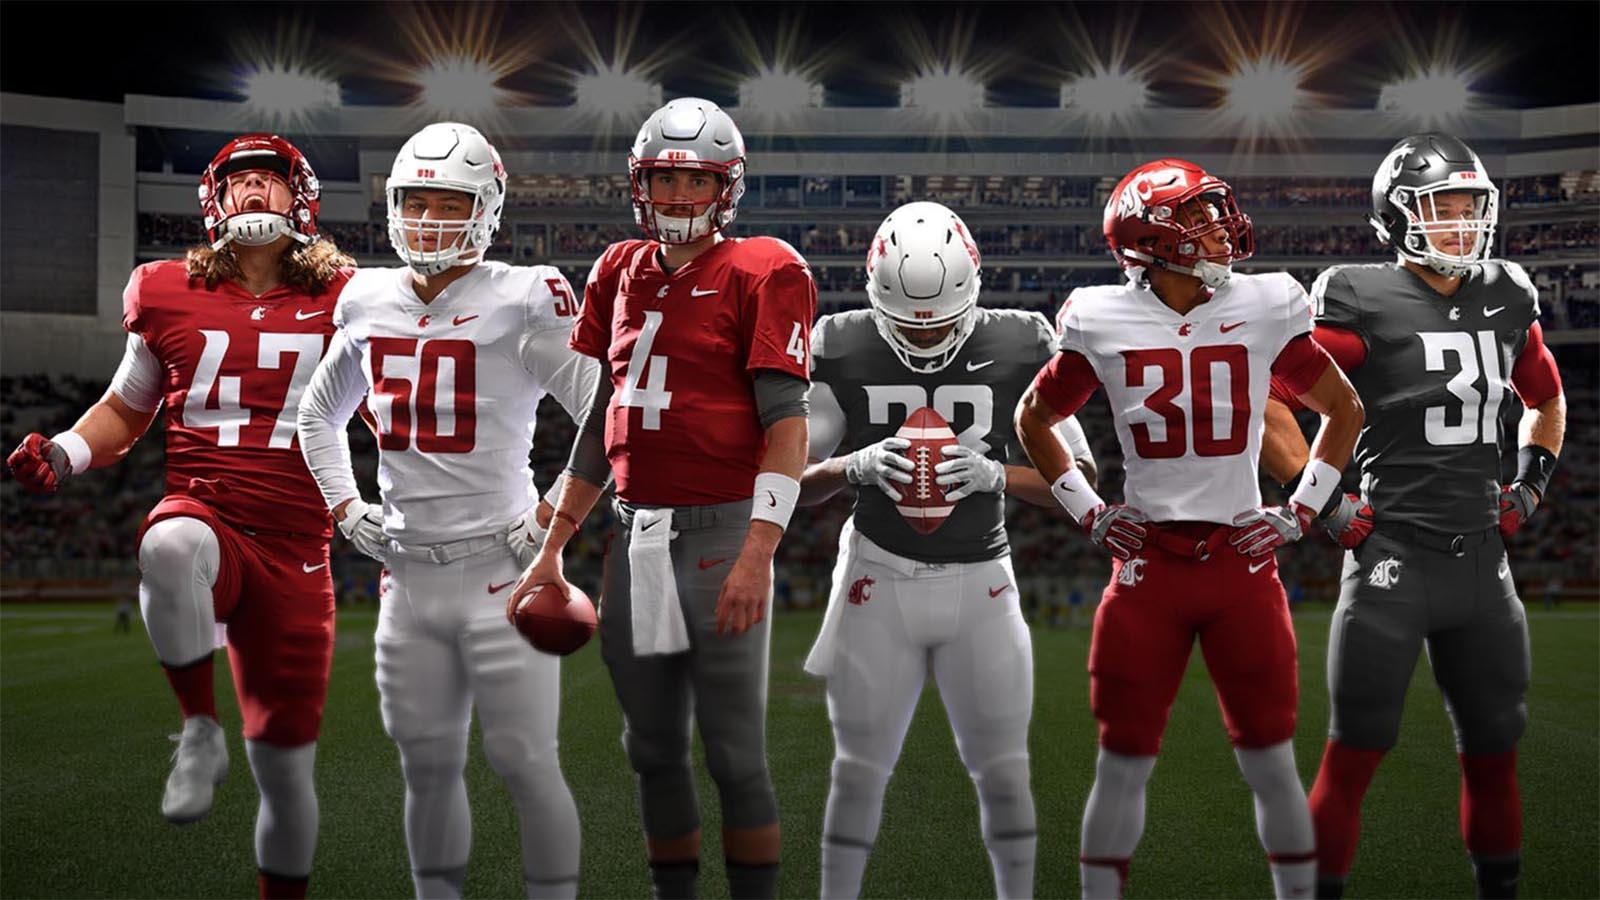 On Wednesday, Washington State unveiled its uniform combinations for the upcoming football season. (